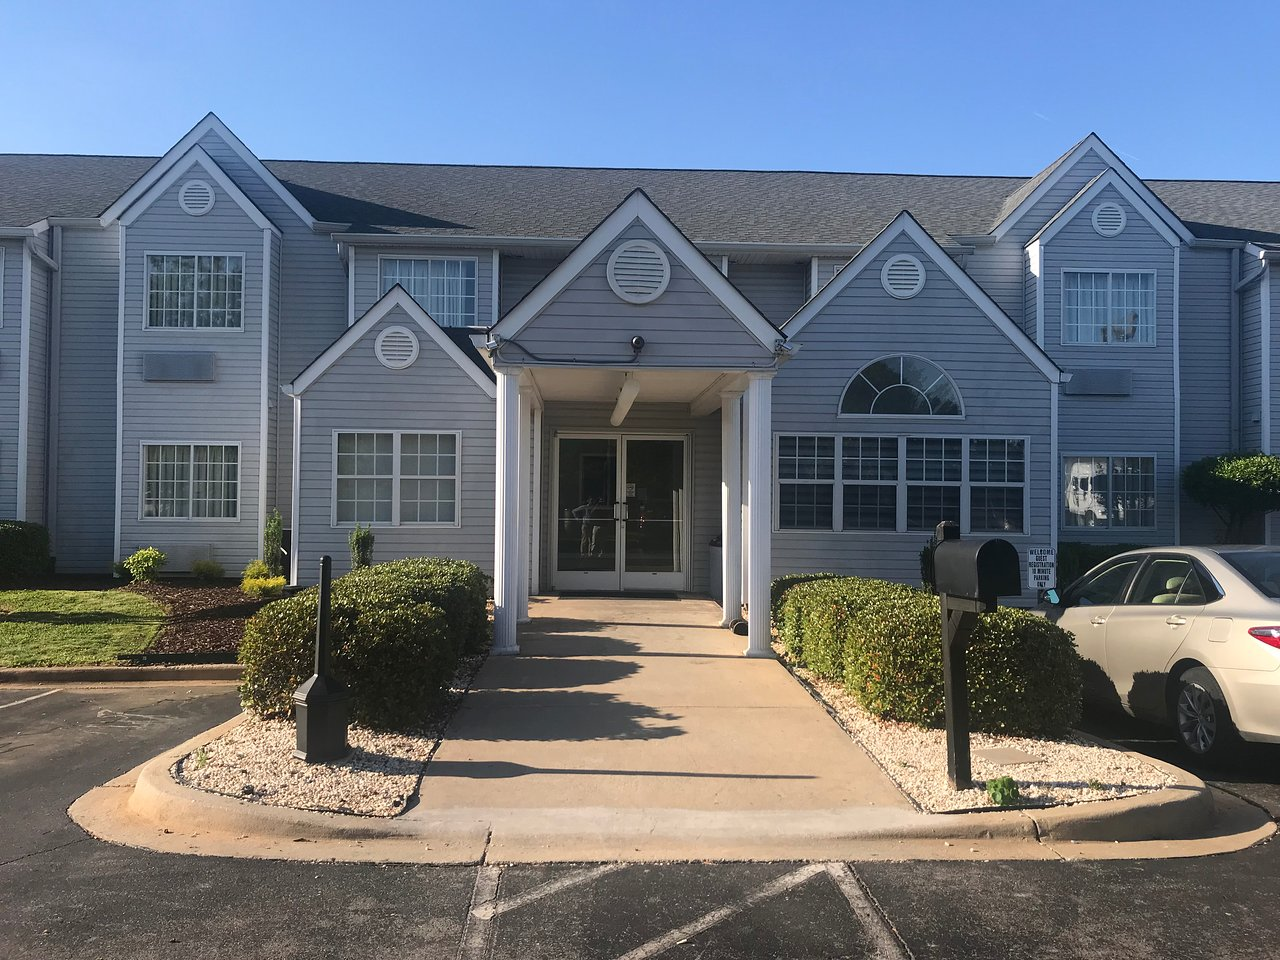 DO NOT STAY HERE - Review of Midtown Motor Inn, Gastonia, NC